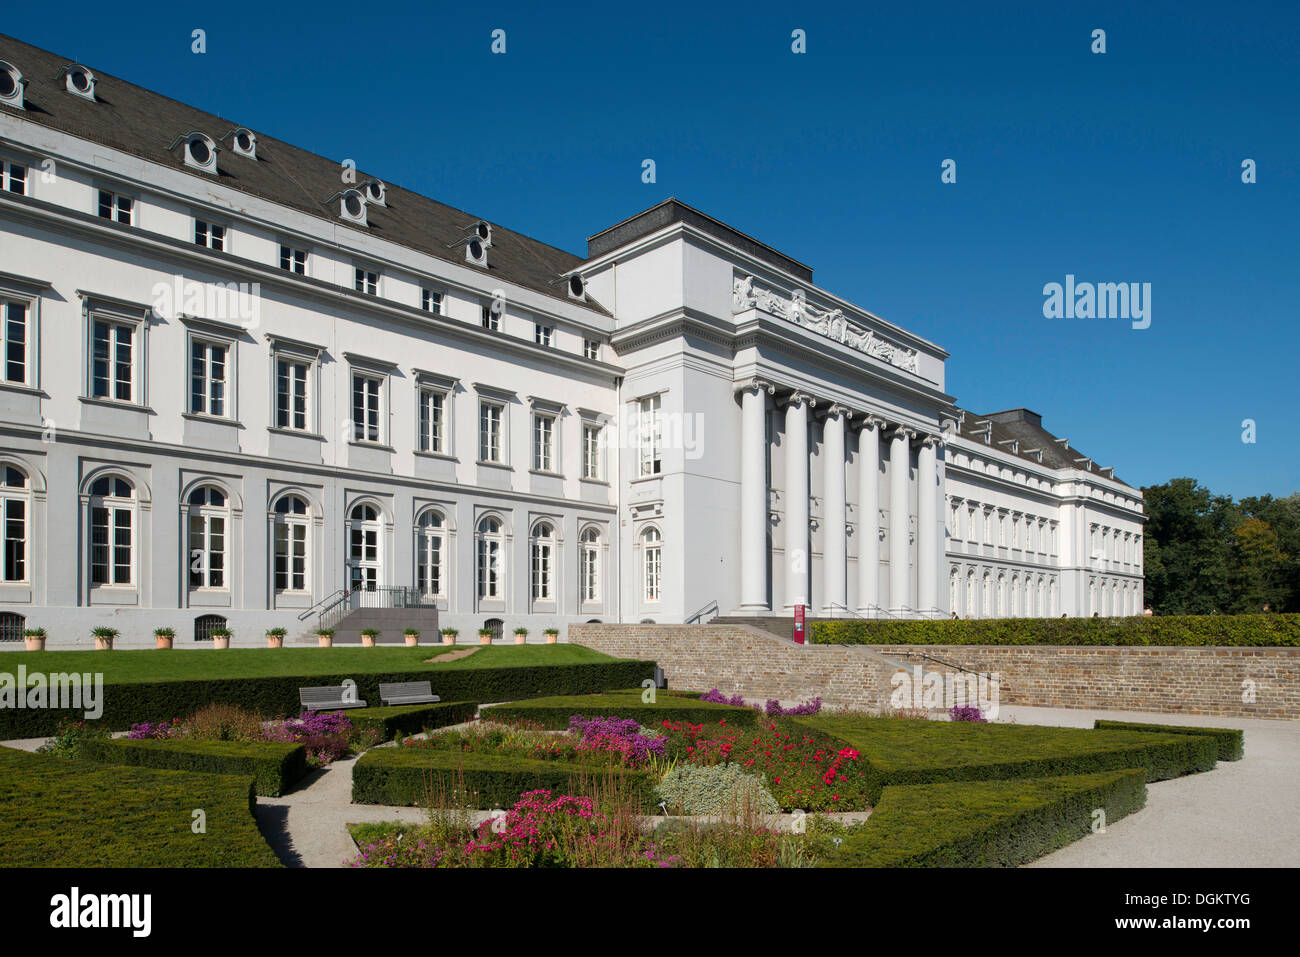 Electoral Palace, French early classicism, UNESCO World Heritage Site, protected cultural property, Koblenz - Stock Image